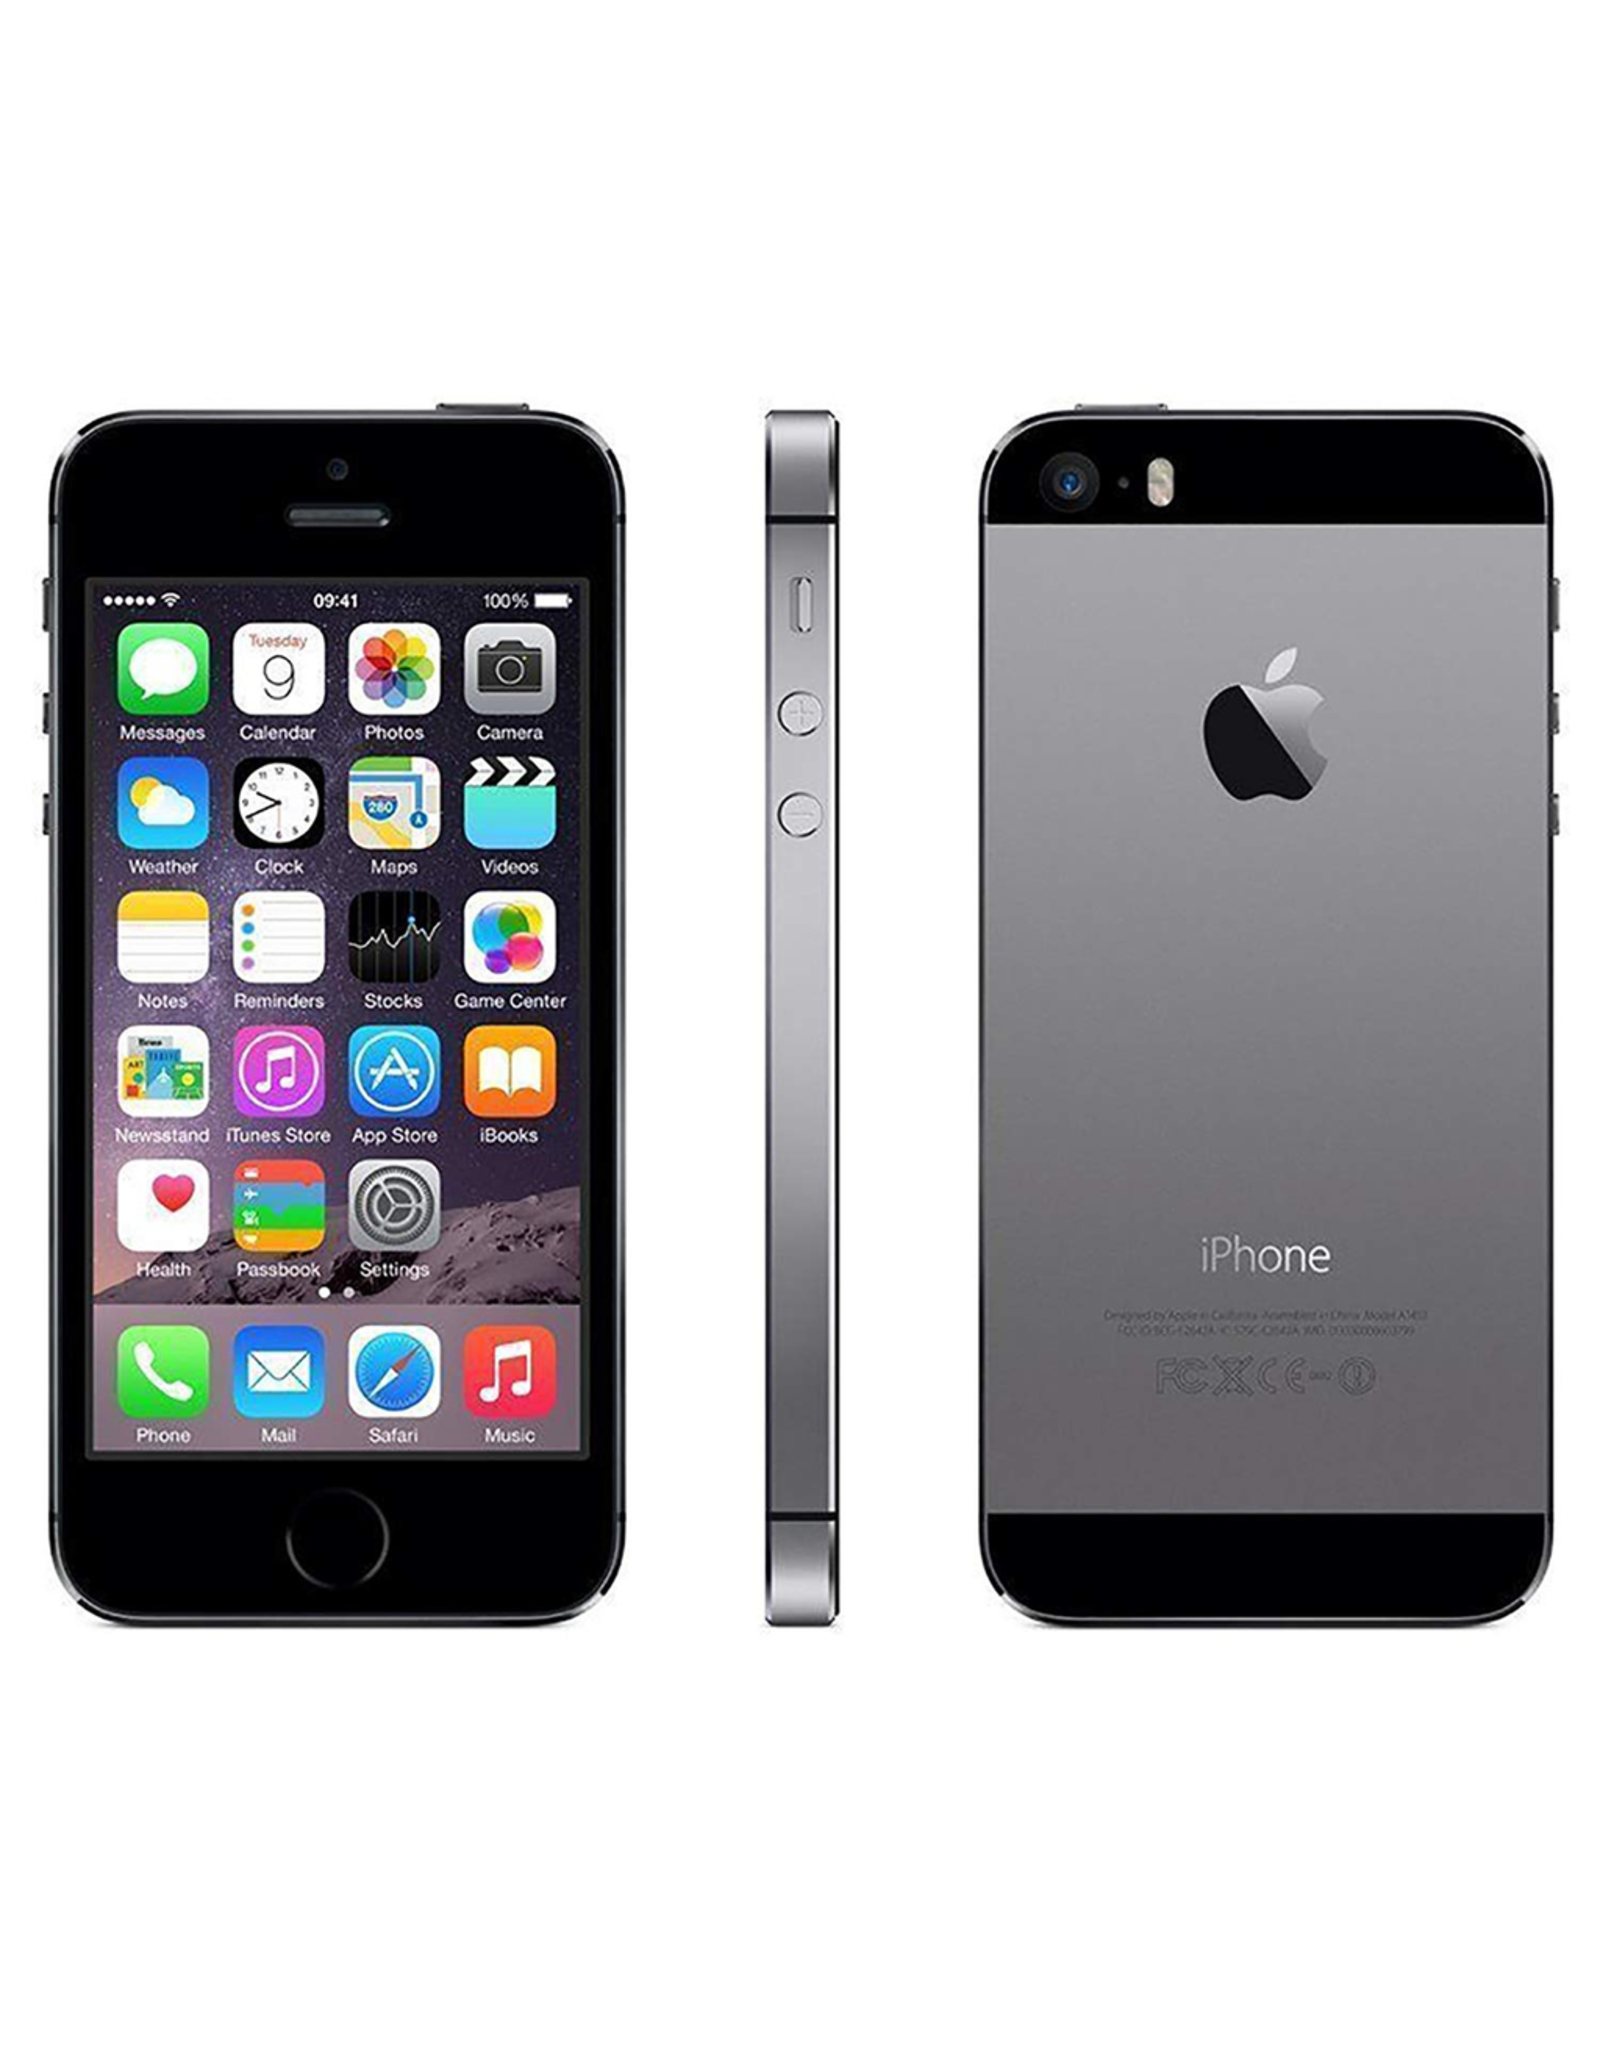 Apple iPhone 5S (16GB, Space Grey) - 30 Day Exchange